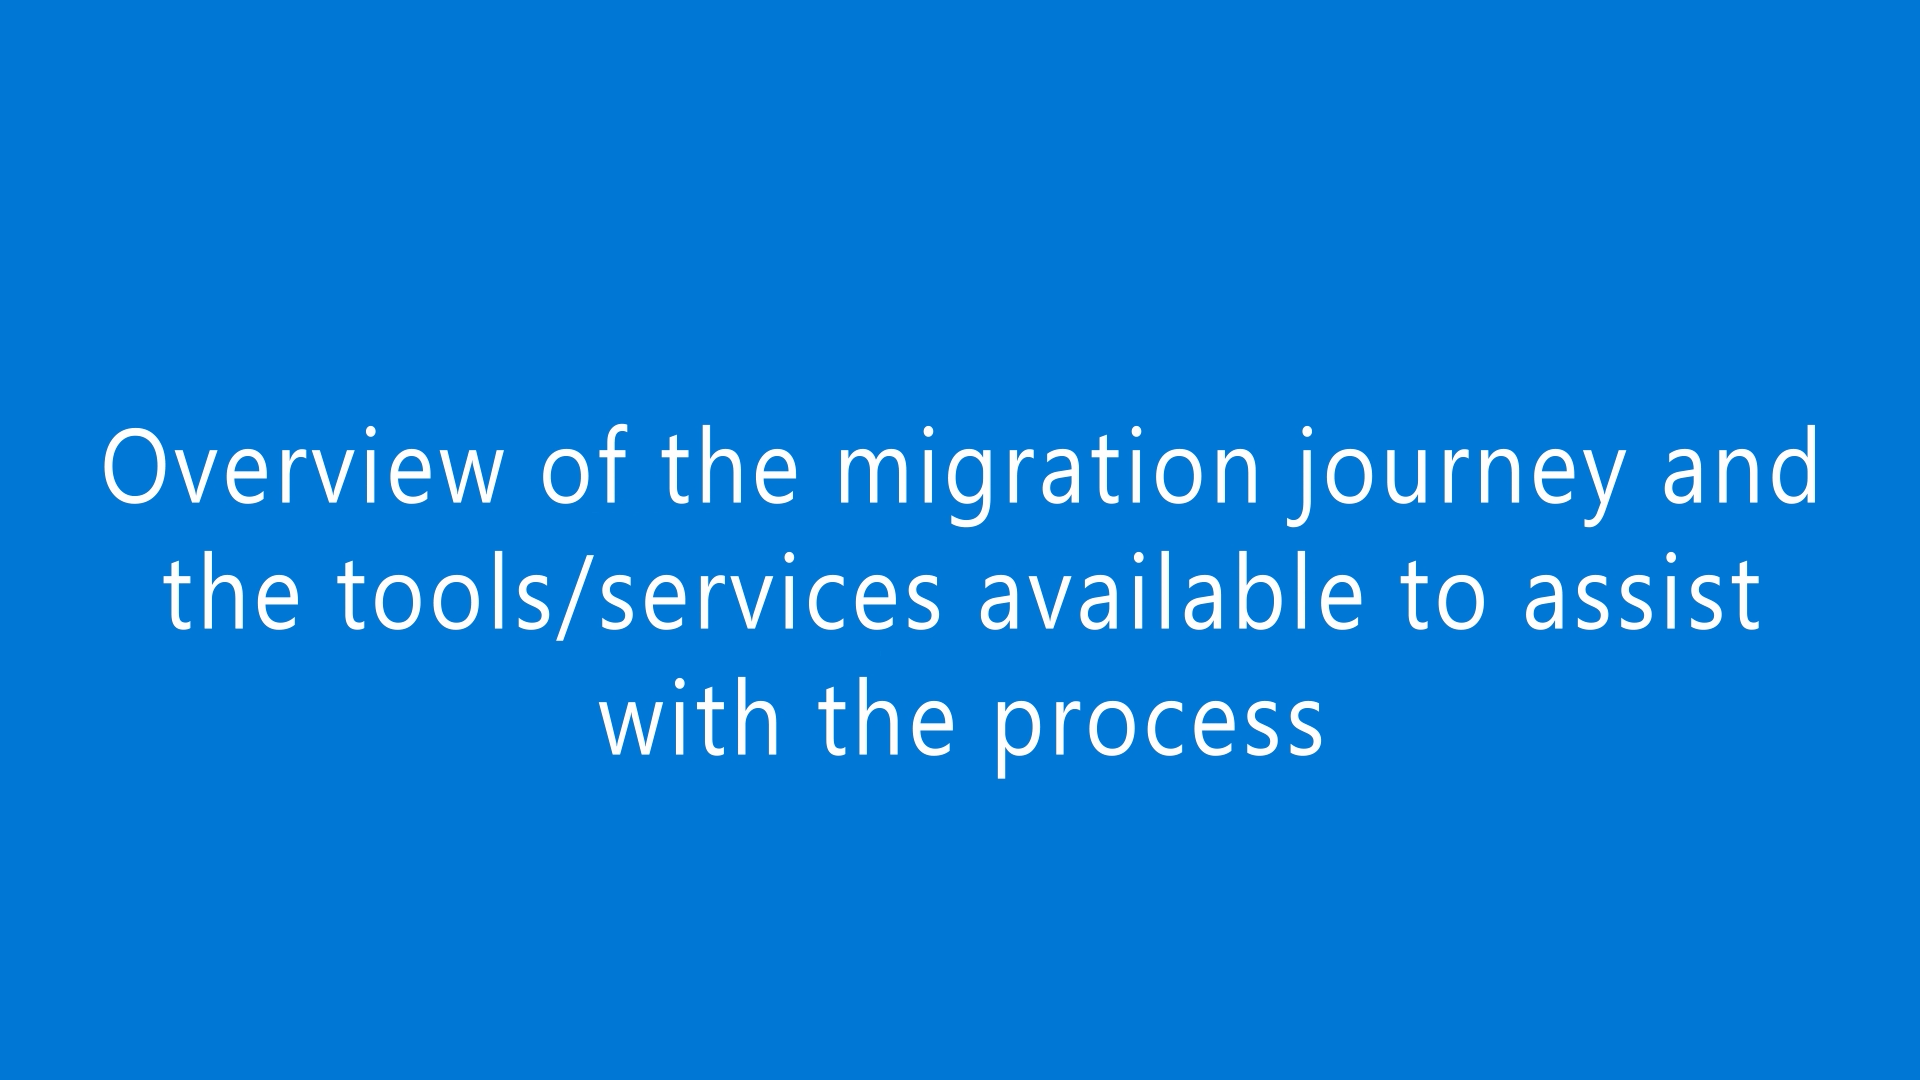 Overview of the migration journey and the tools/services recommended for performing assessment and migration